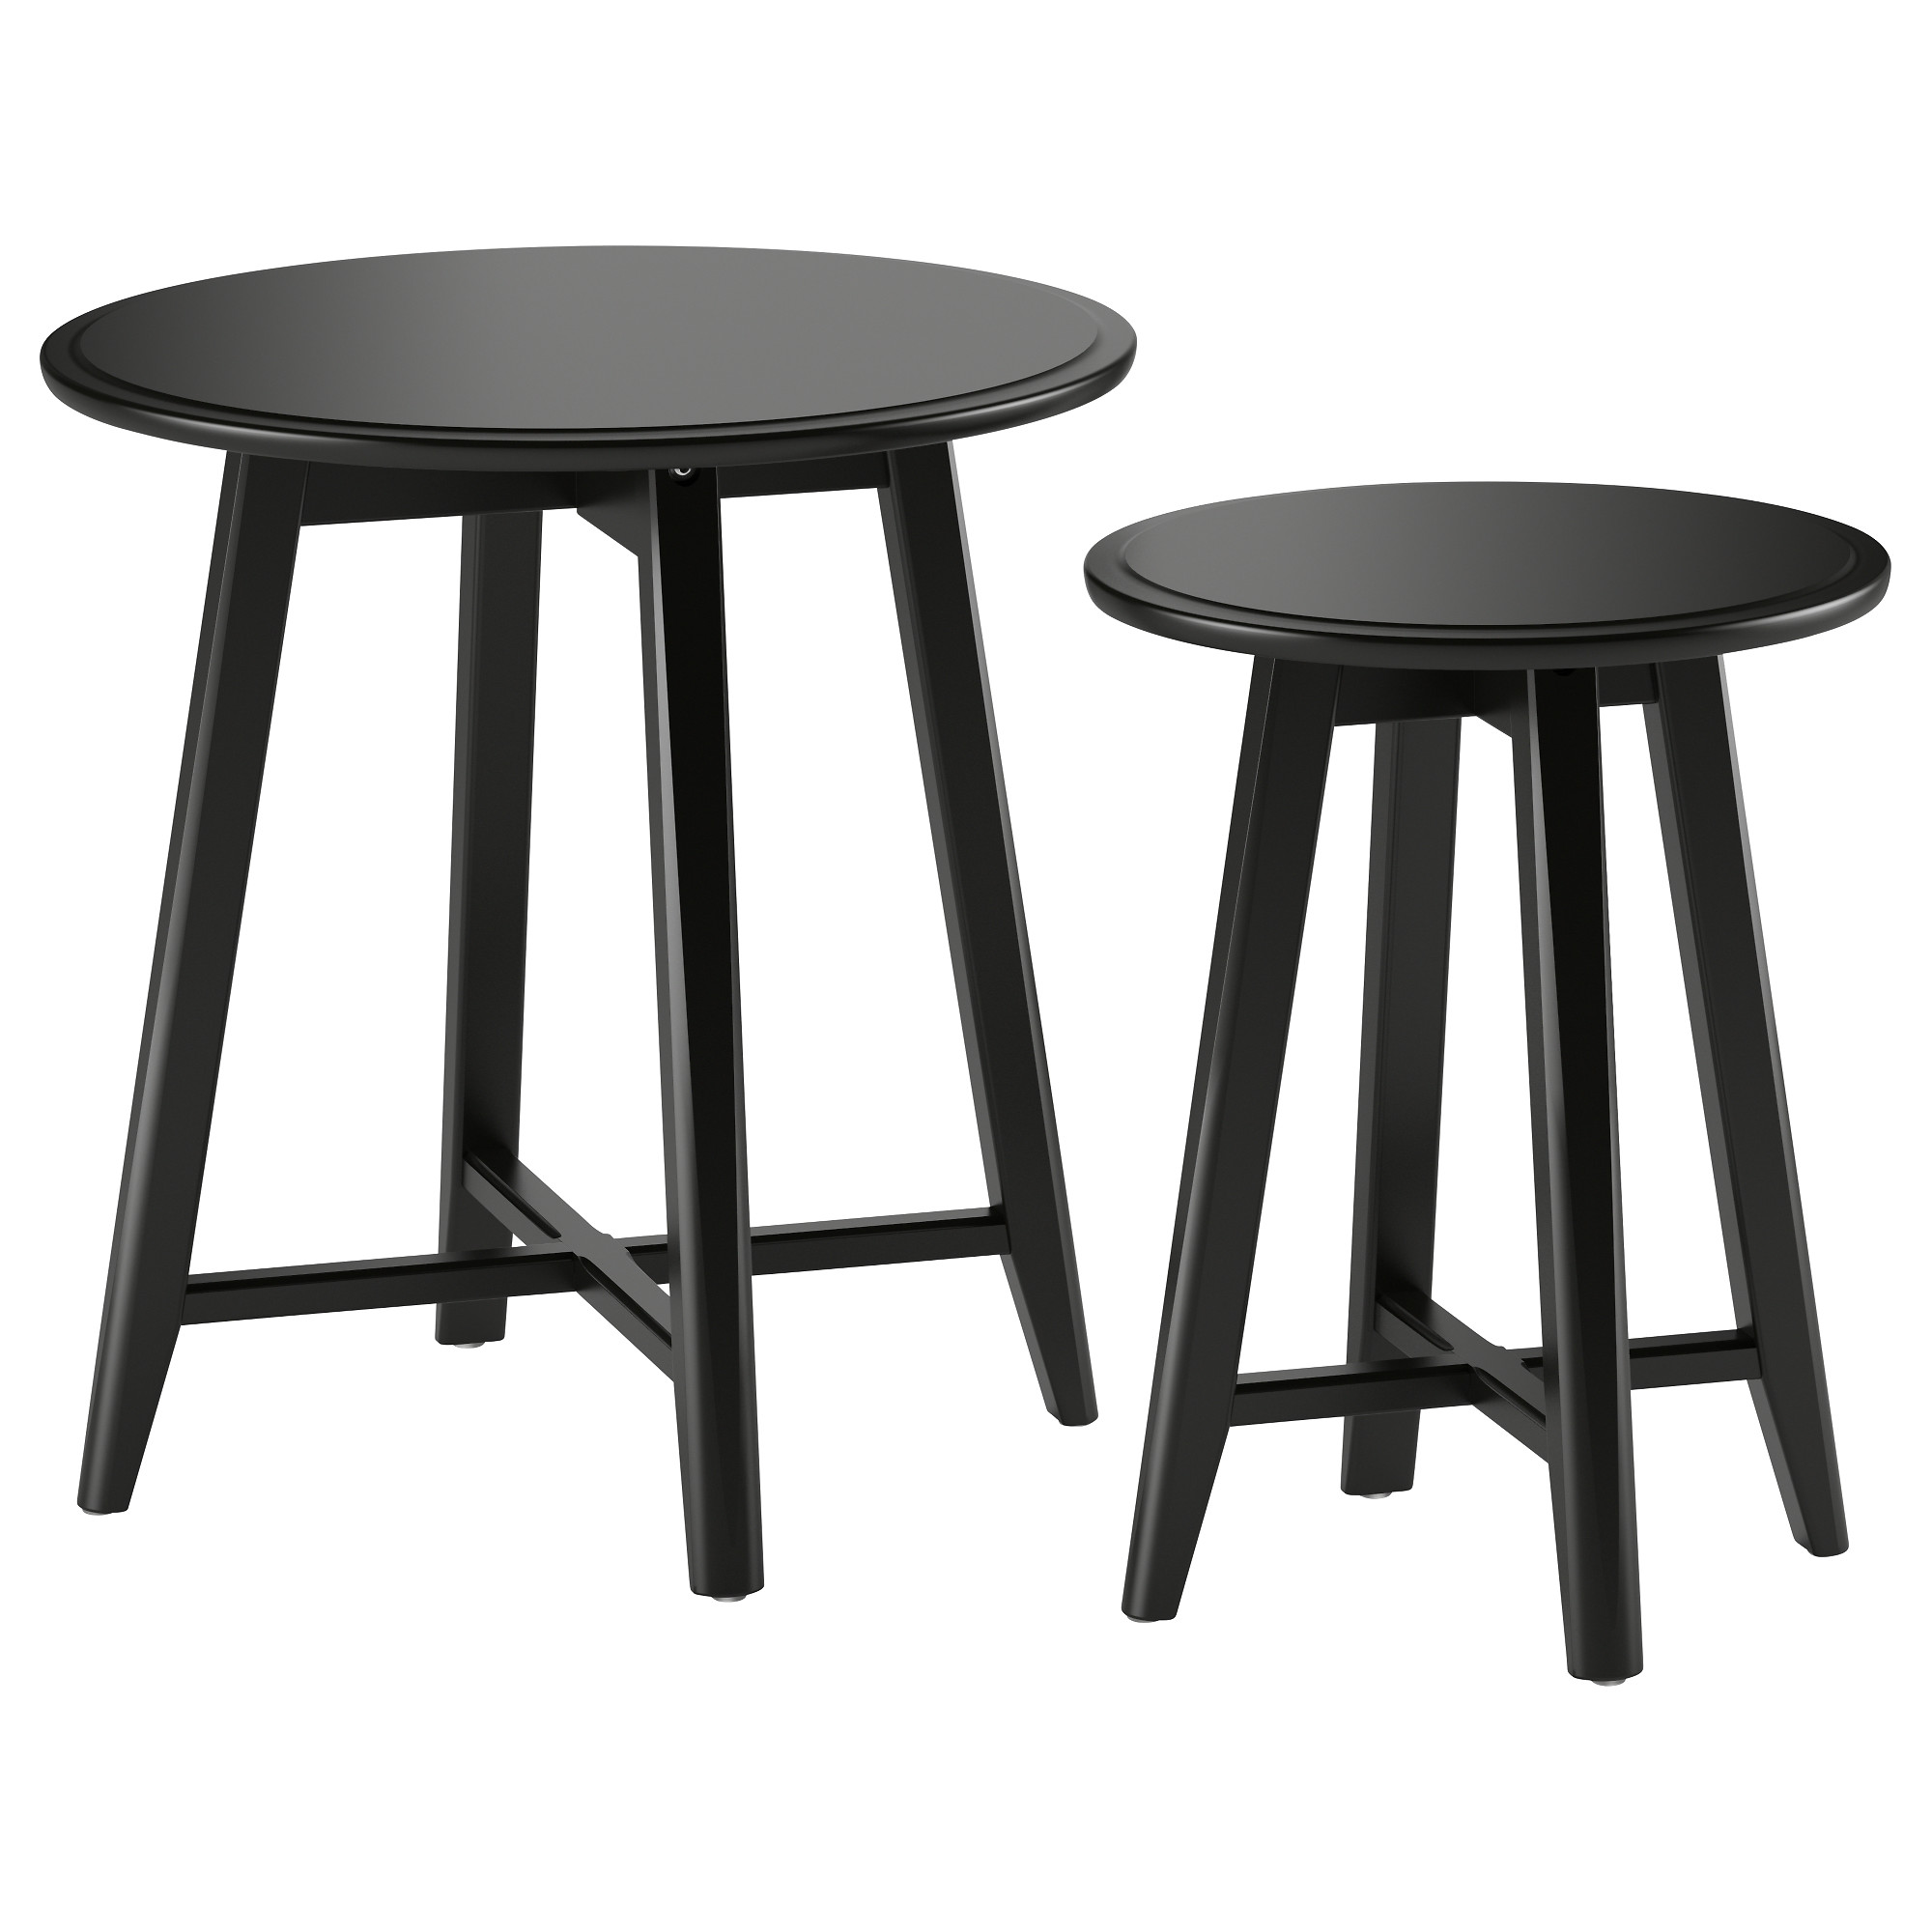 KRAGSTA Nesting Tables, Set Of 2   Black   IKEA